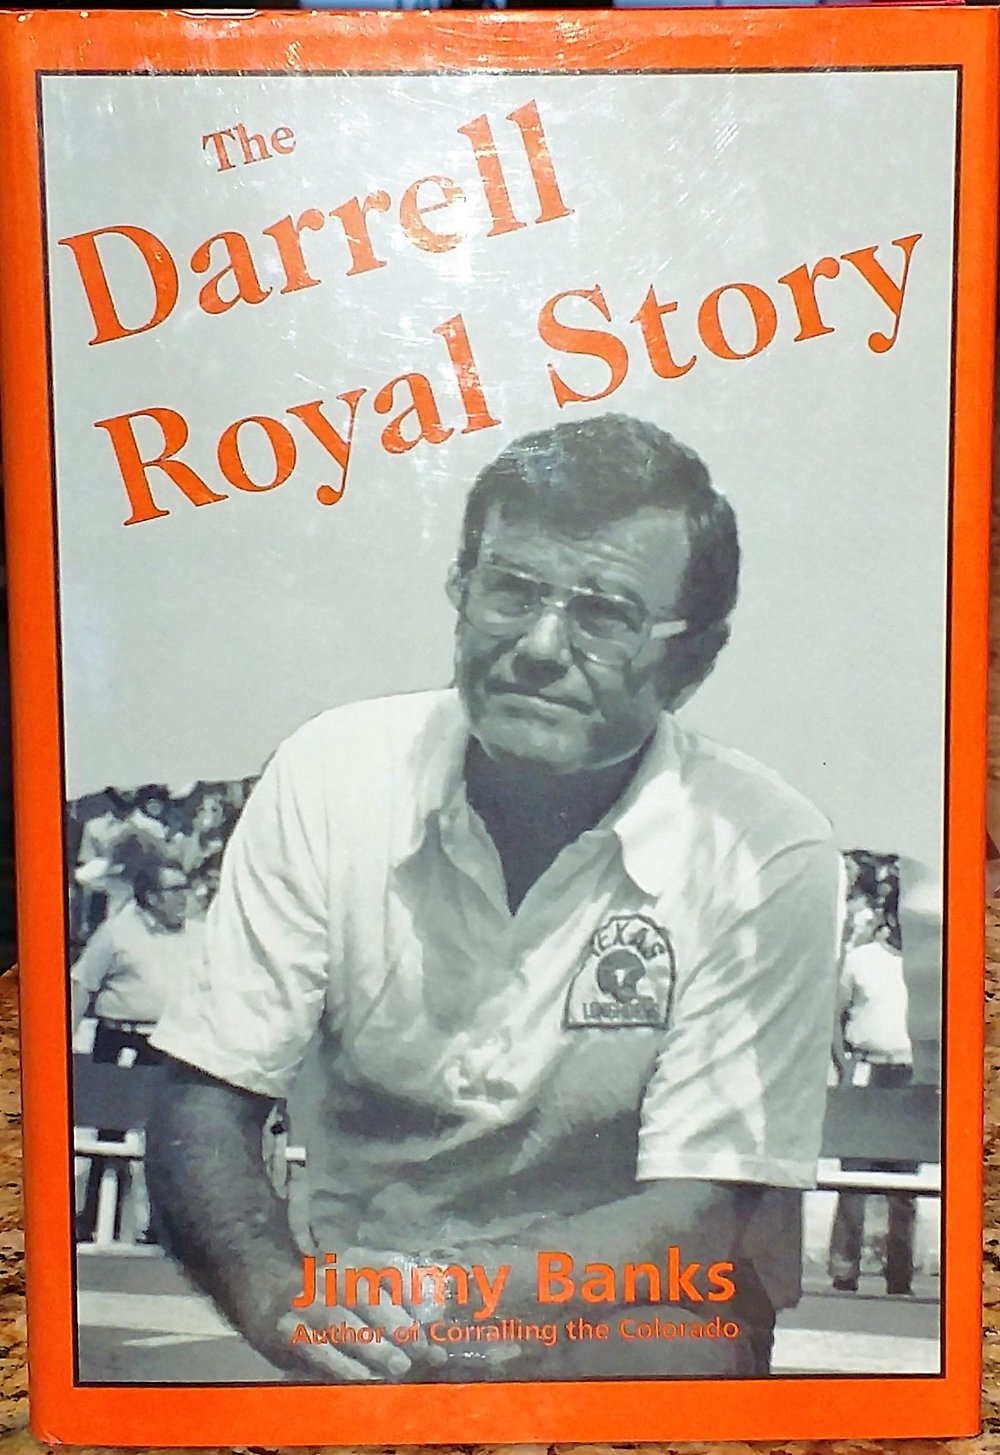 The Darrell Royal Story.jpg